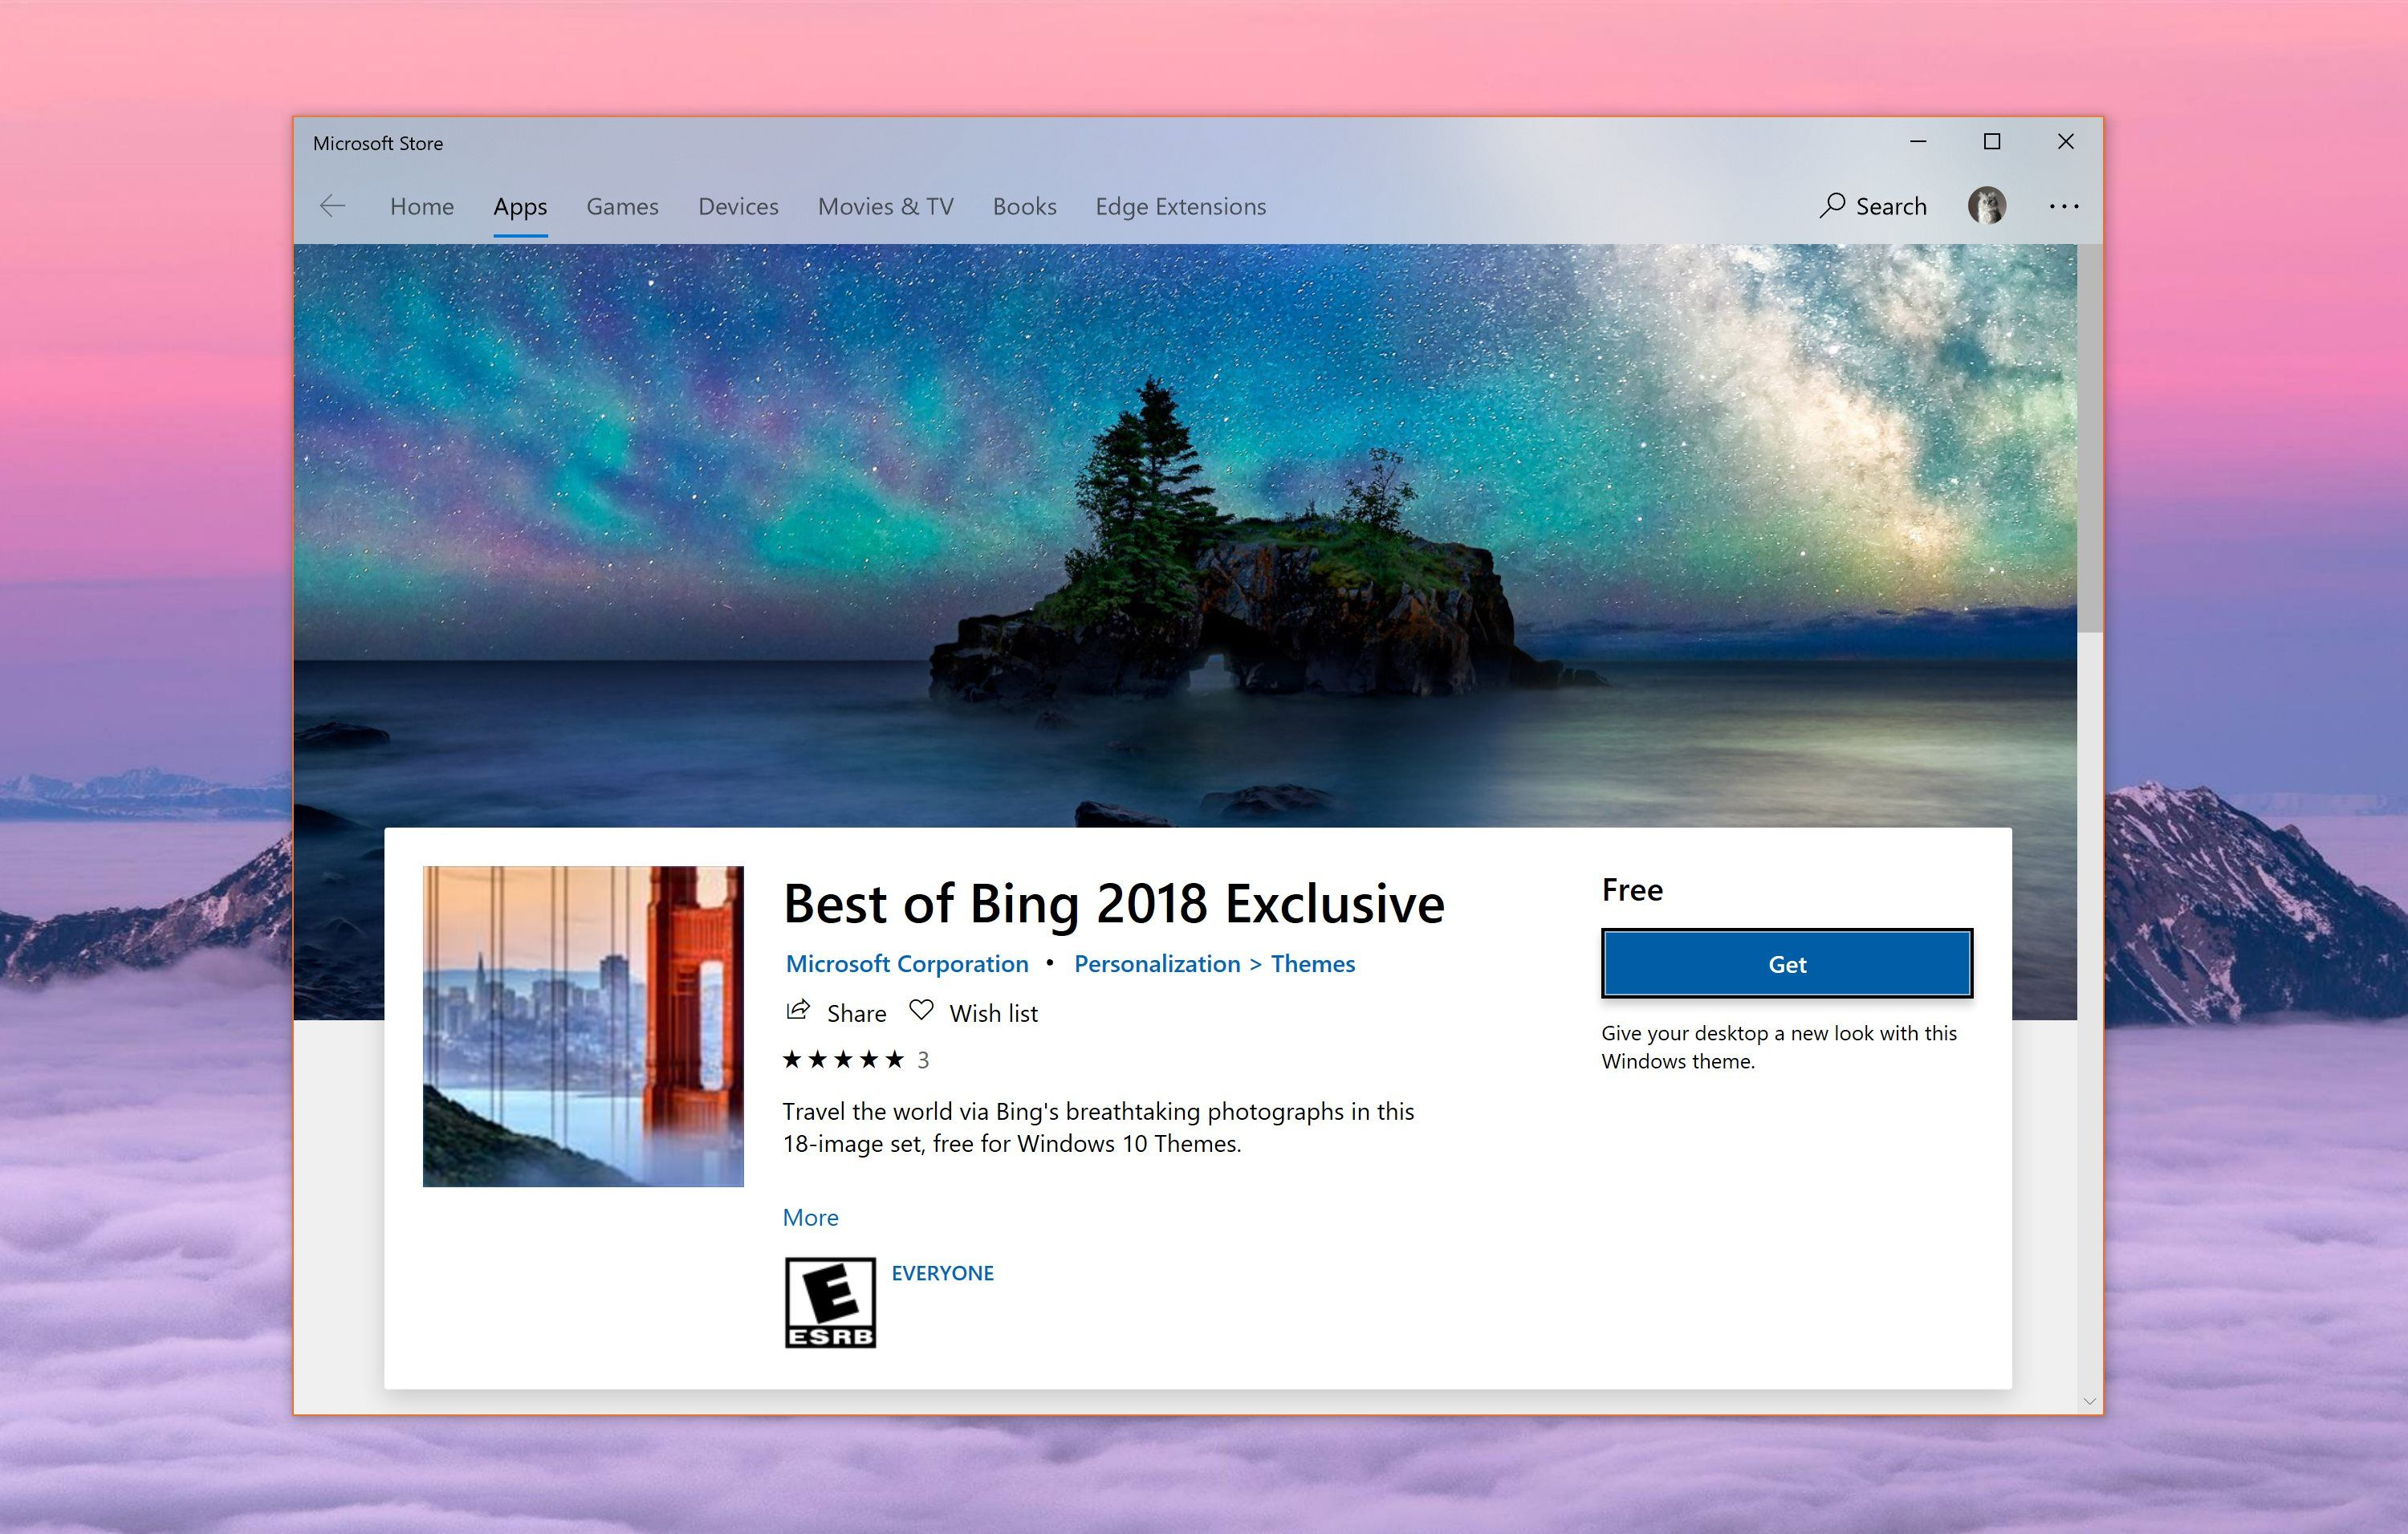 Microsoft Releases Another Wallpaper Pack For Windows 10 Best Of Bing 2018 Exclusive Now Up For Grabs Https News Softpedia Windows 10 Windows Microsoft